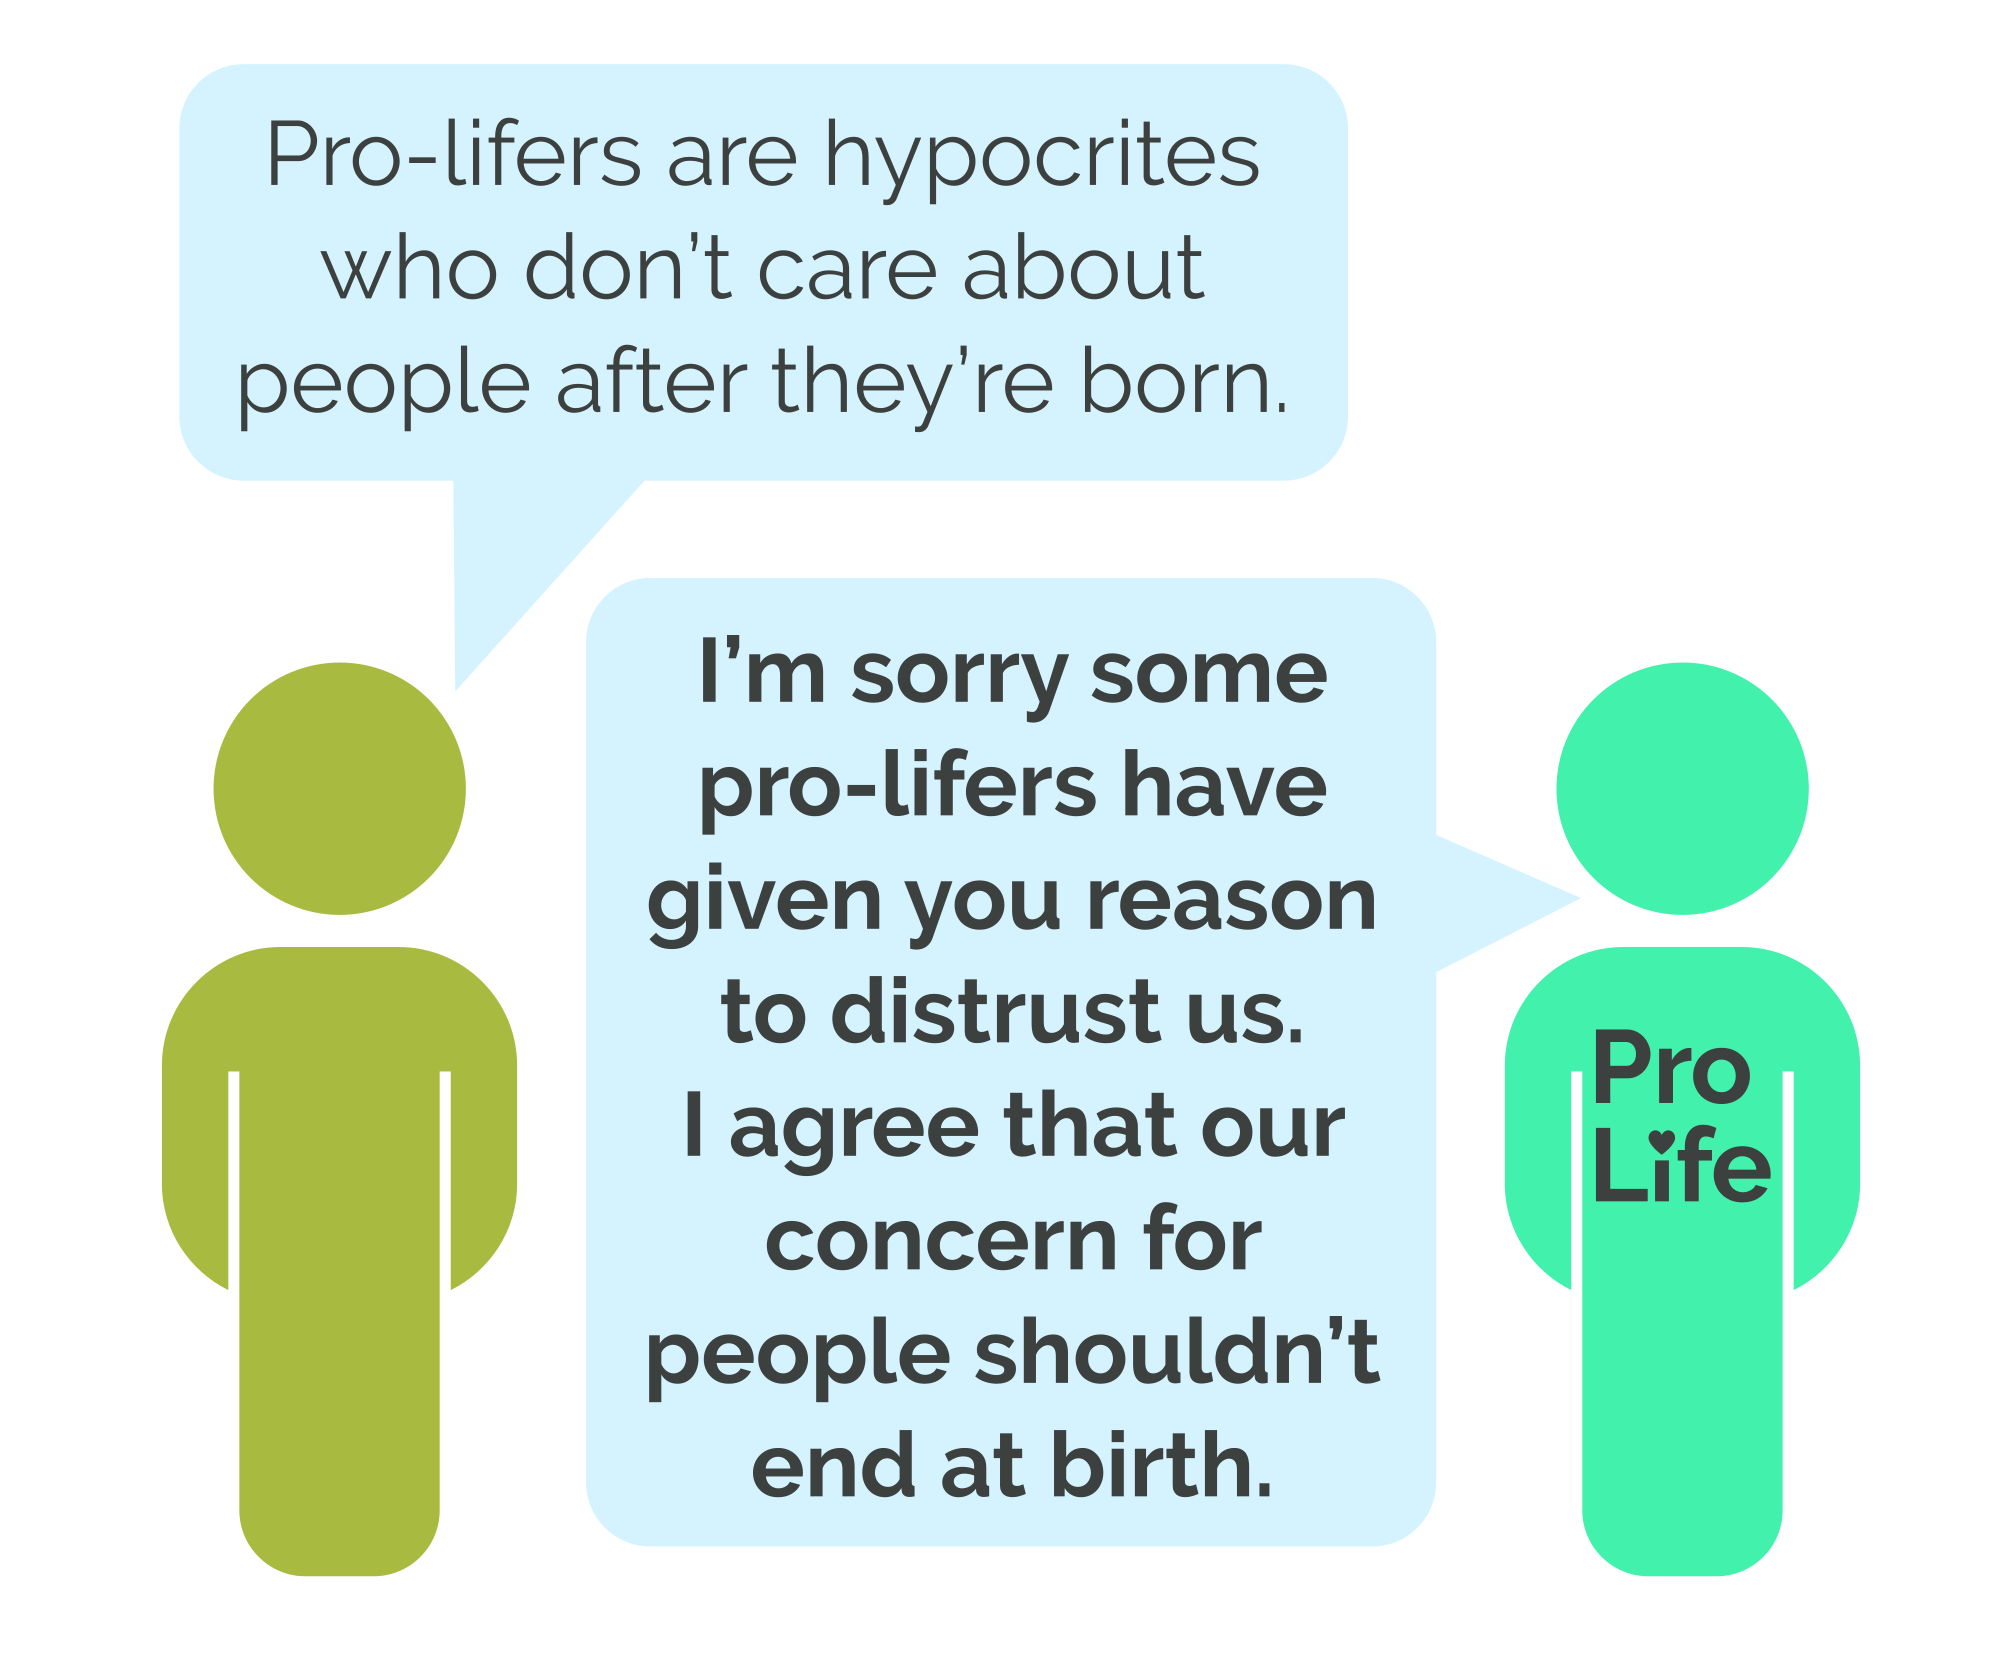 Person 1: Pro-lifers are hypocrites who don't care about people after they're born. Person 2 (our hero): I'm sorry some pro-lifers have given you reason to distrust us. I agree that our concern for people shouldn't end at birth.